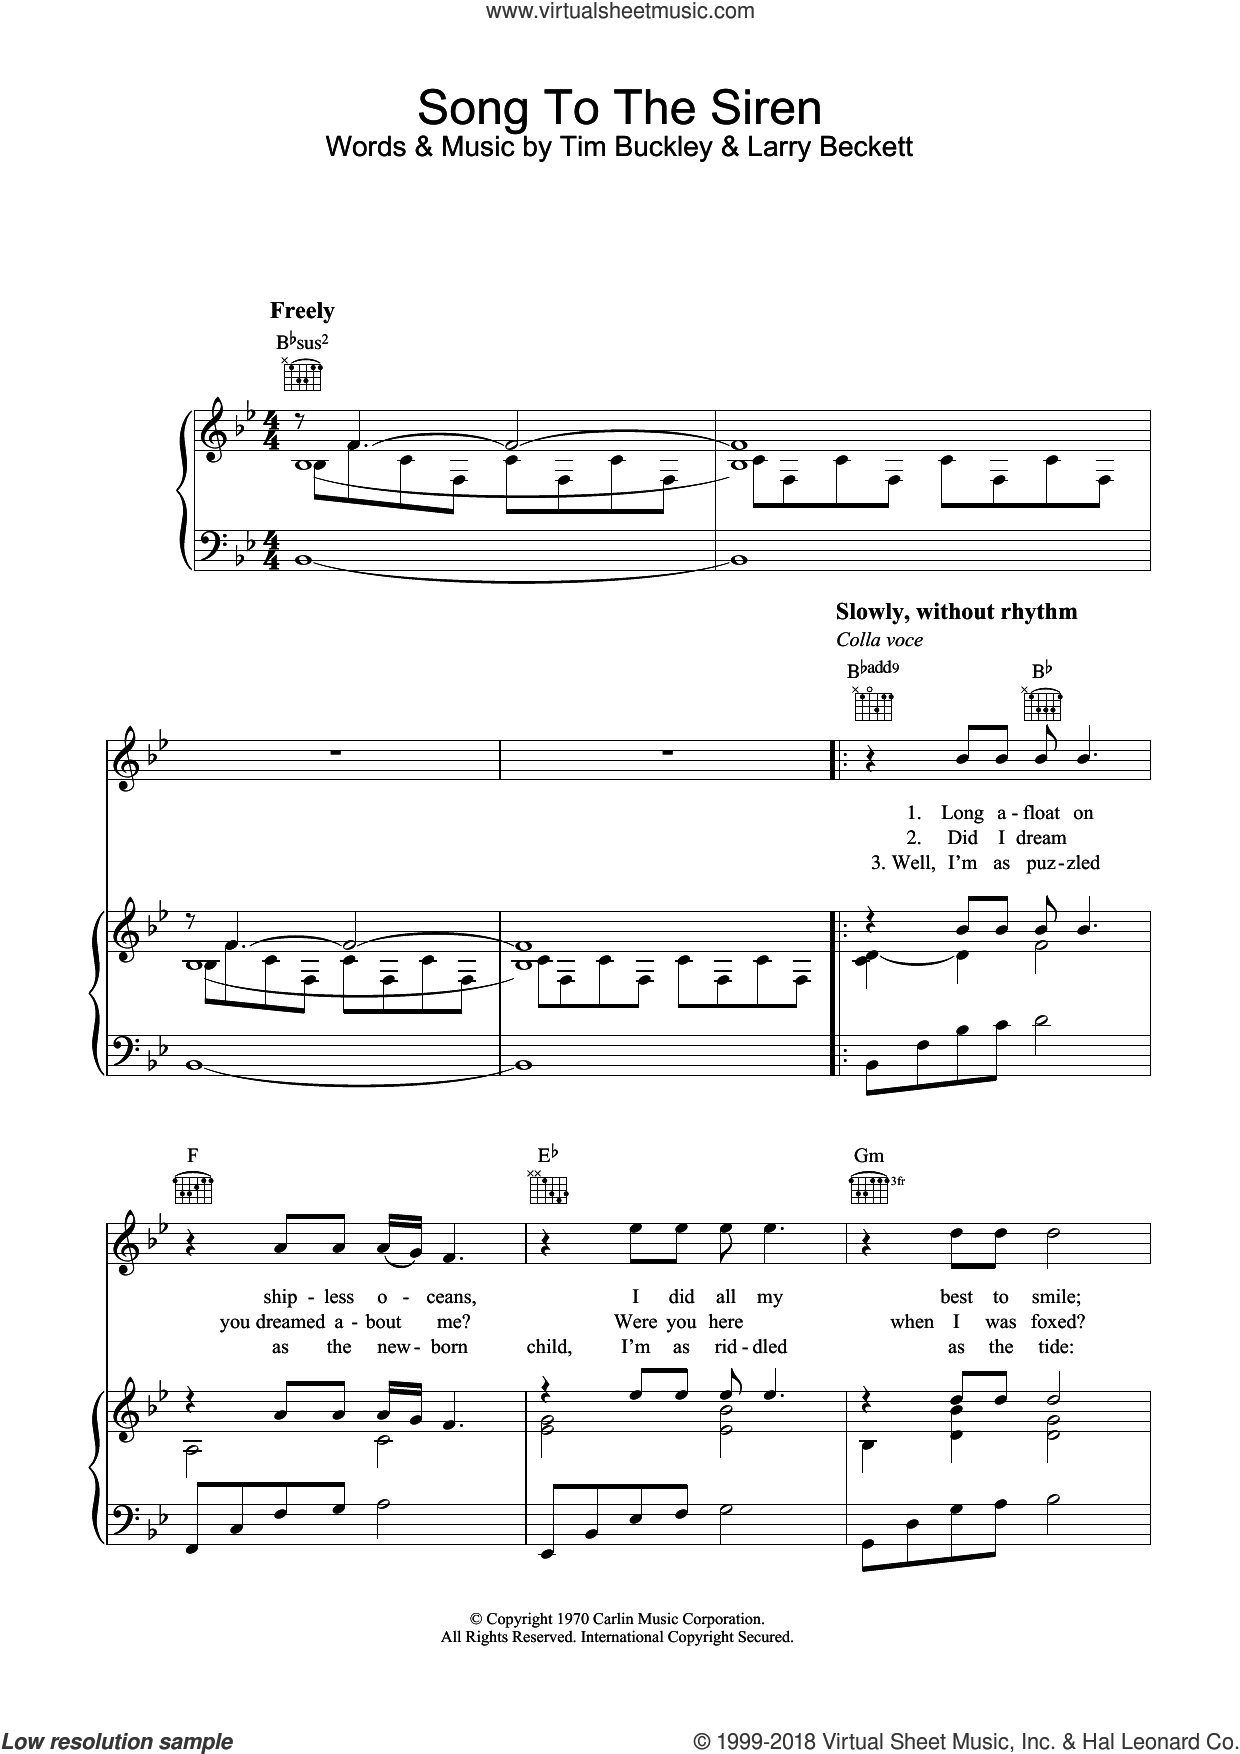 Song To The Siren sheet music for voice, piano or guitar by Tim Buckley and Larry Beckett, intermediate skill level